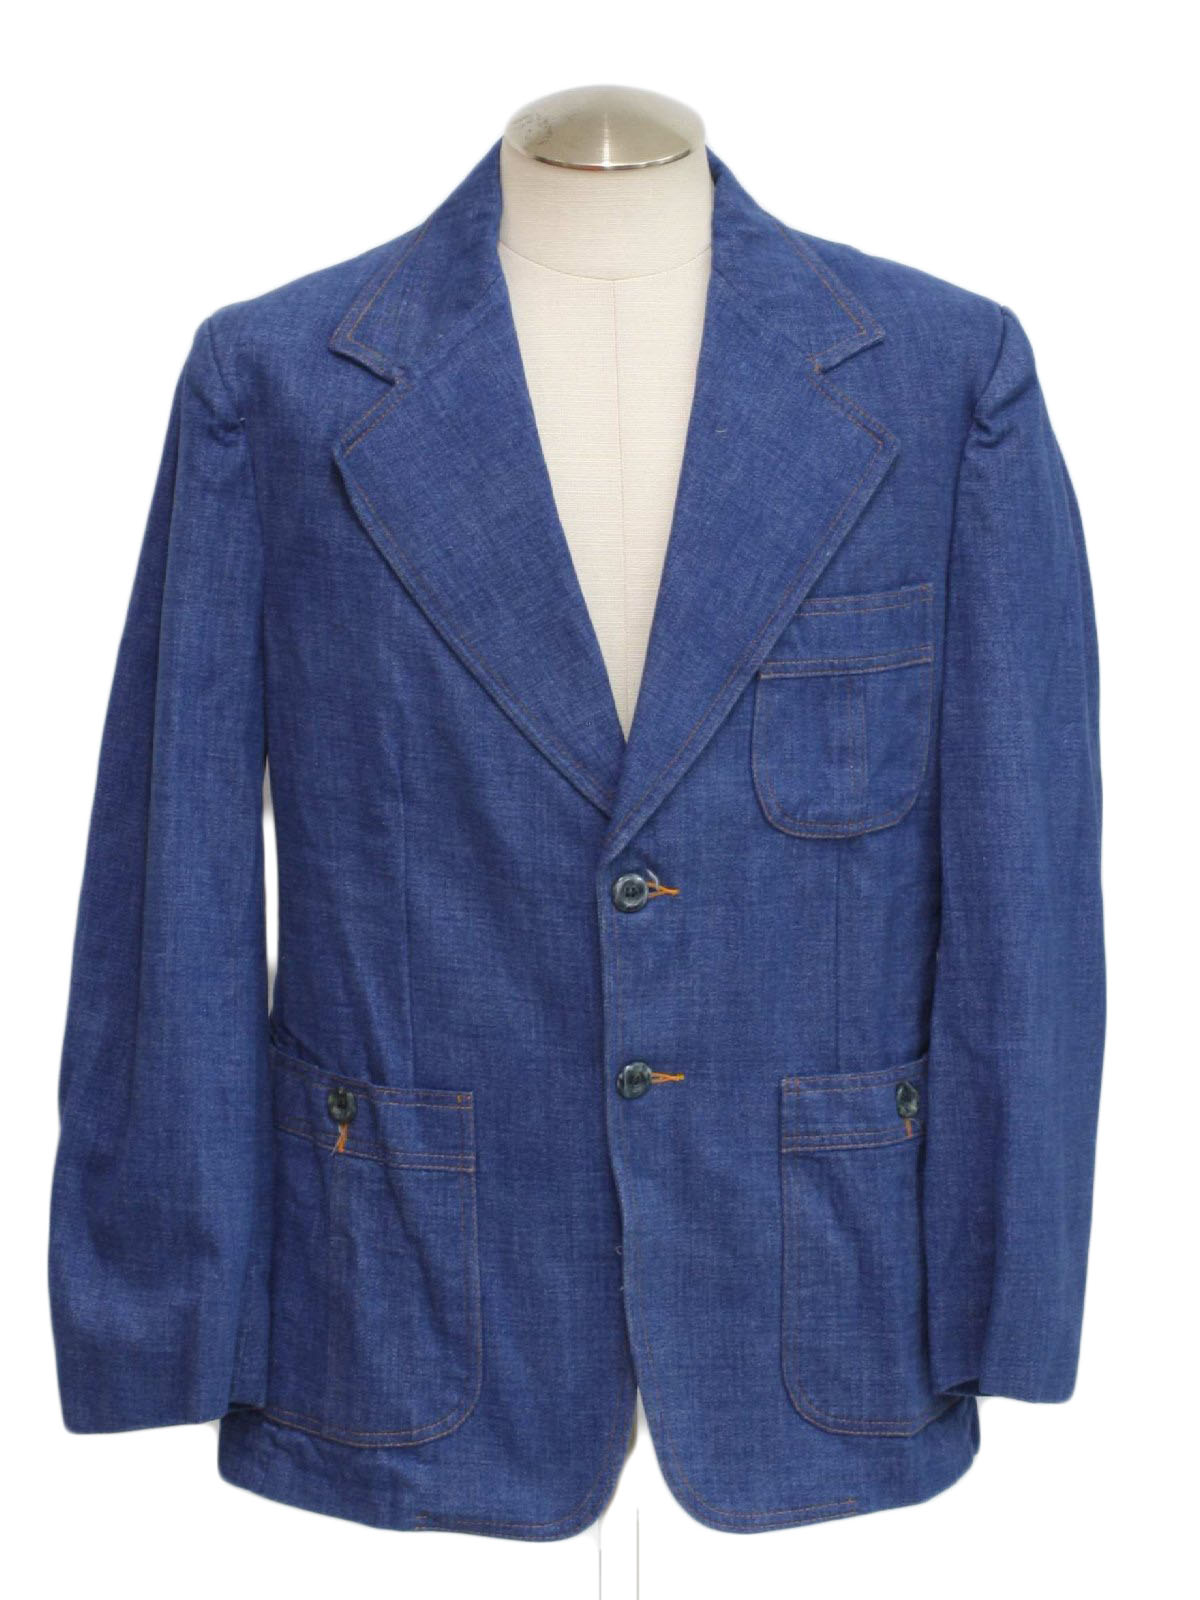 Free shipping and returns on Men's Cotton & Cotton Blend Blazers & Sport Coats at deletzloads.tk